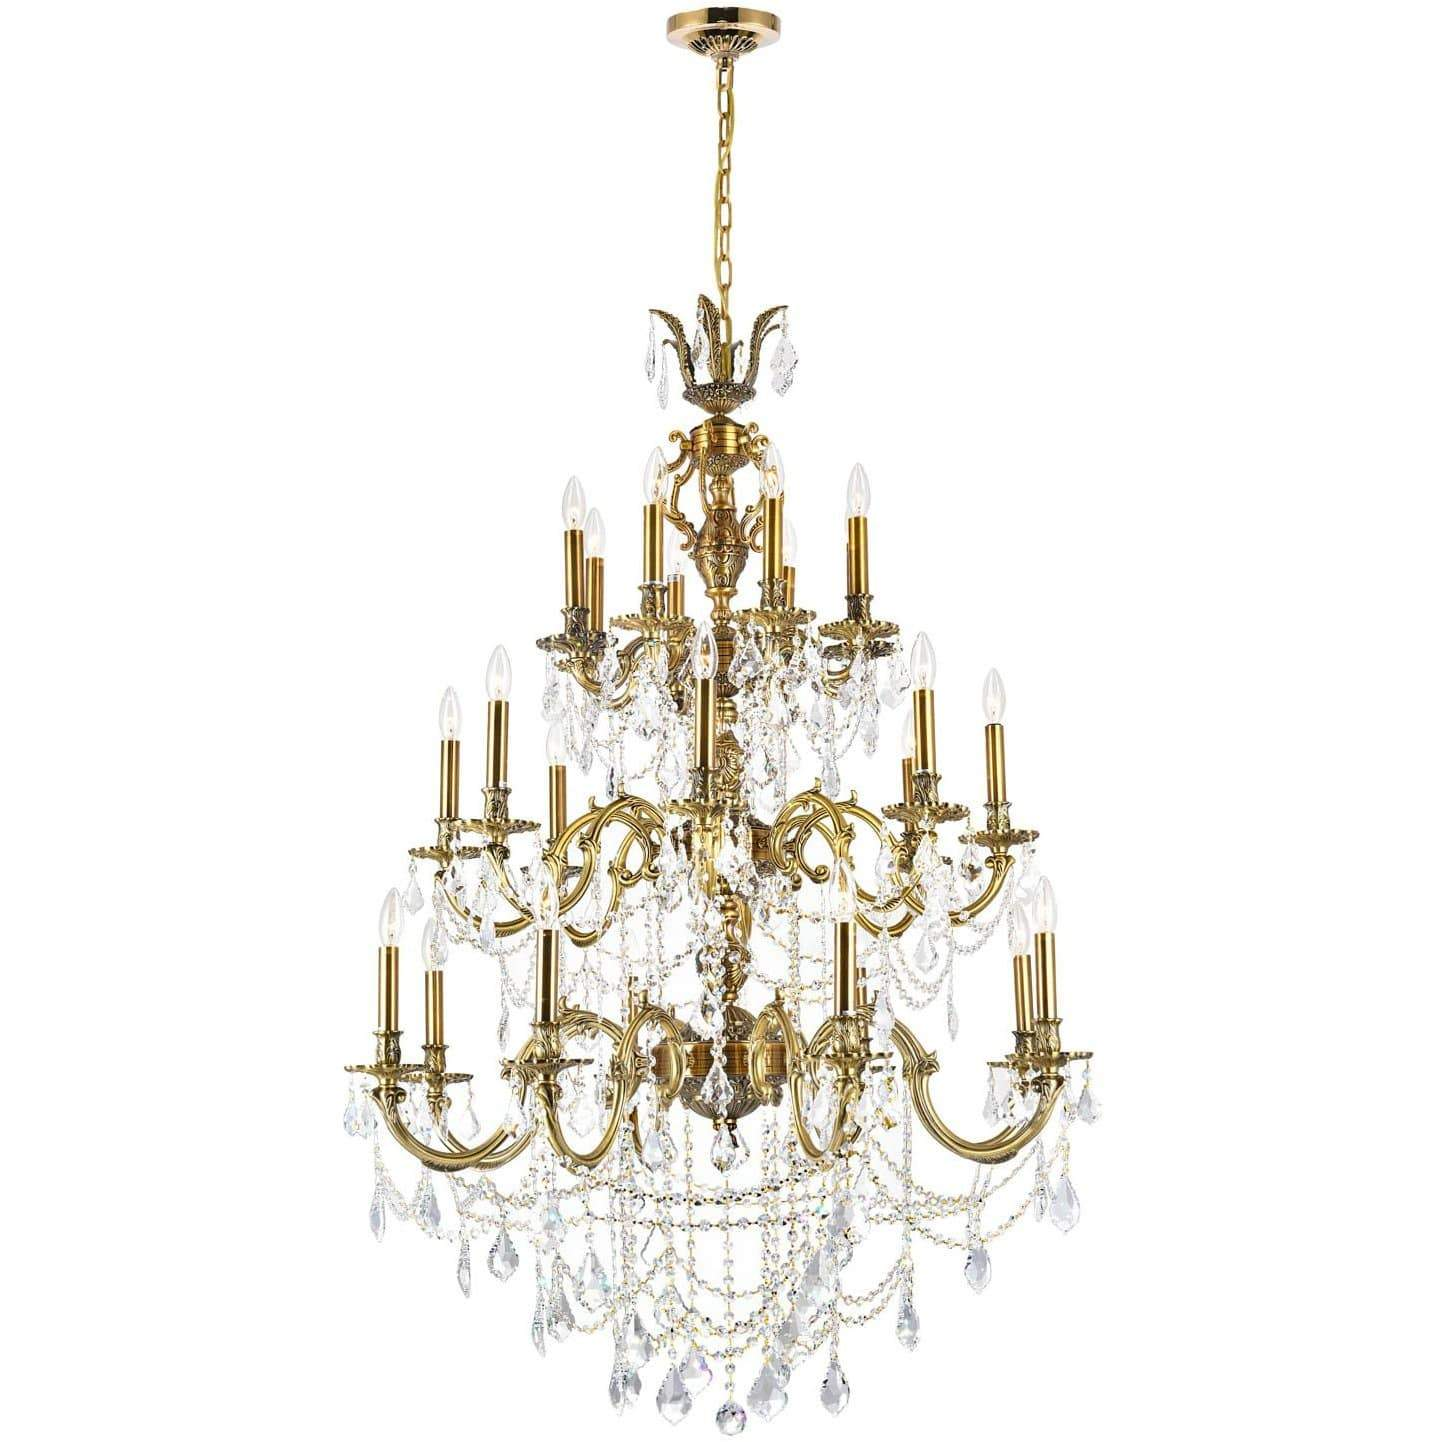 CWI Lighting Chandeliers Antique Brass / K9 Clear Brass 16 Light Up Chandelier with Antique Brass finish by CWI Lighting 2039P30AB-16